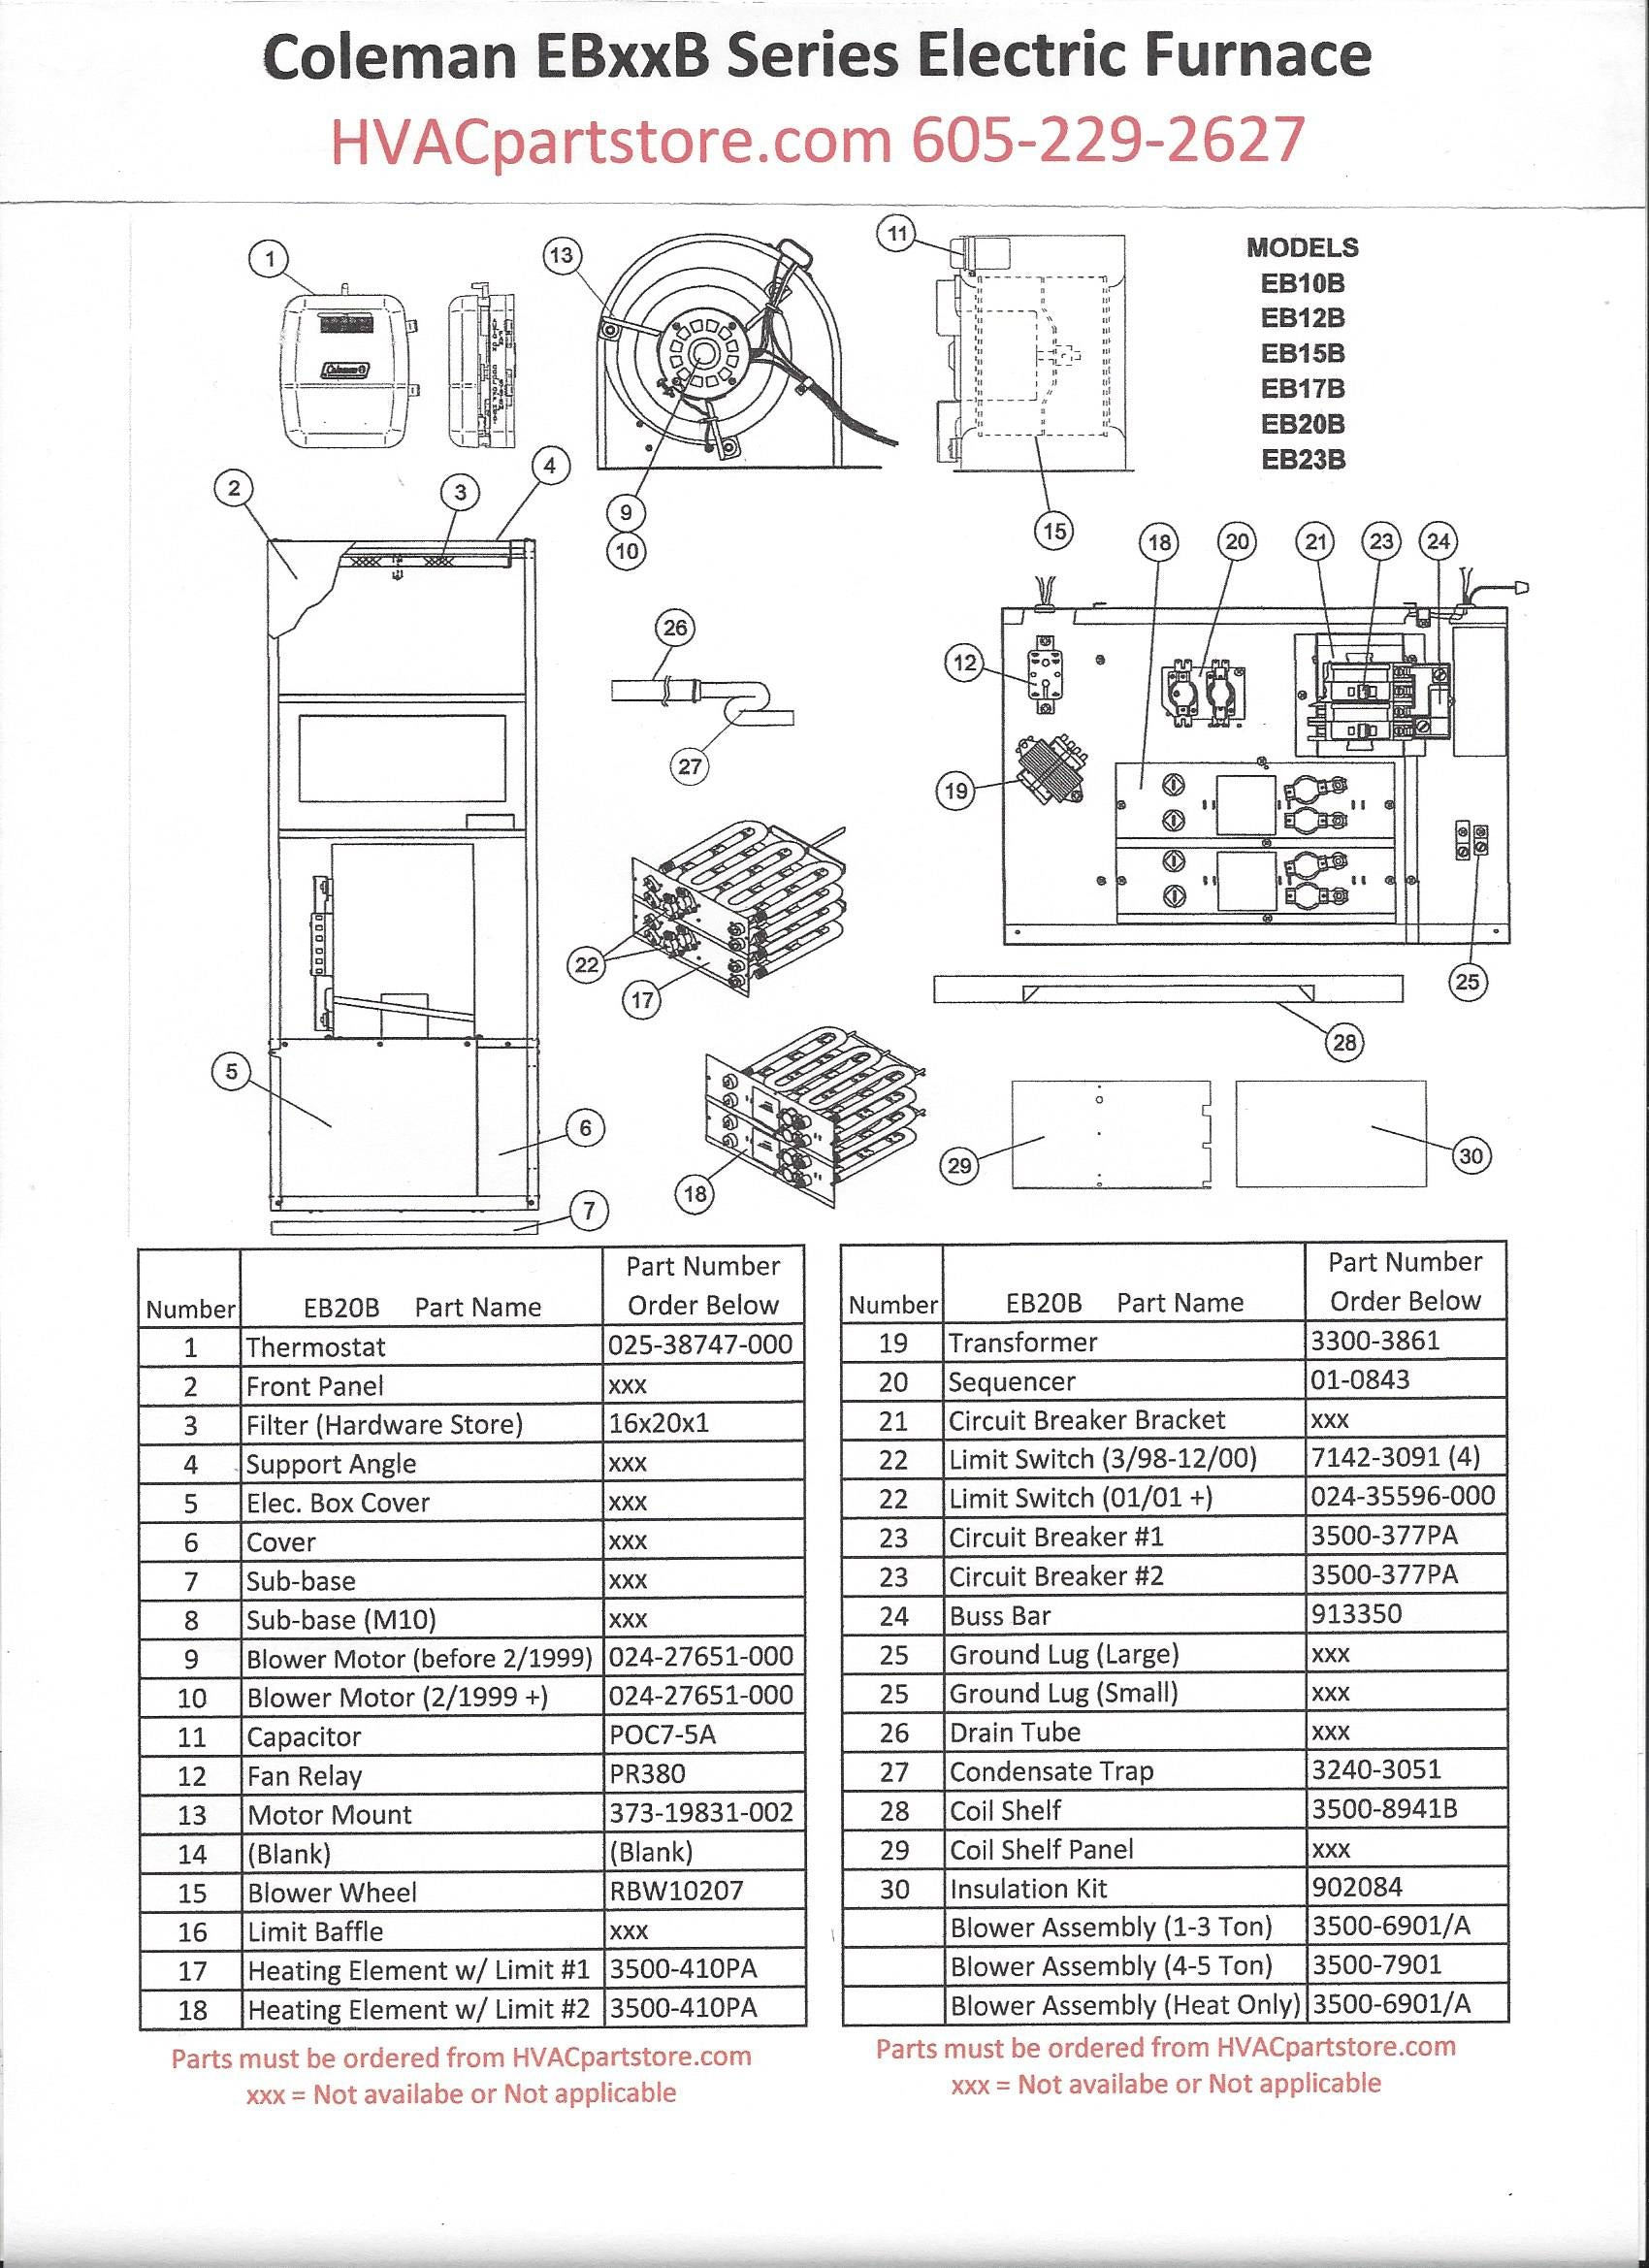 eb20b coleman electric furnace parts – hvacpartstore,Wiring diagram,Wiring Diagram For Coleman Electric Furnace